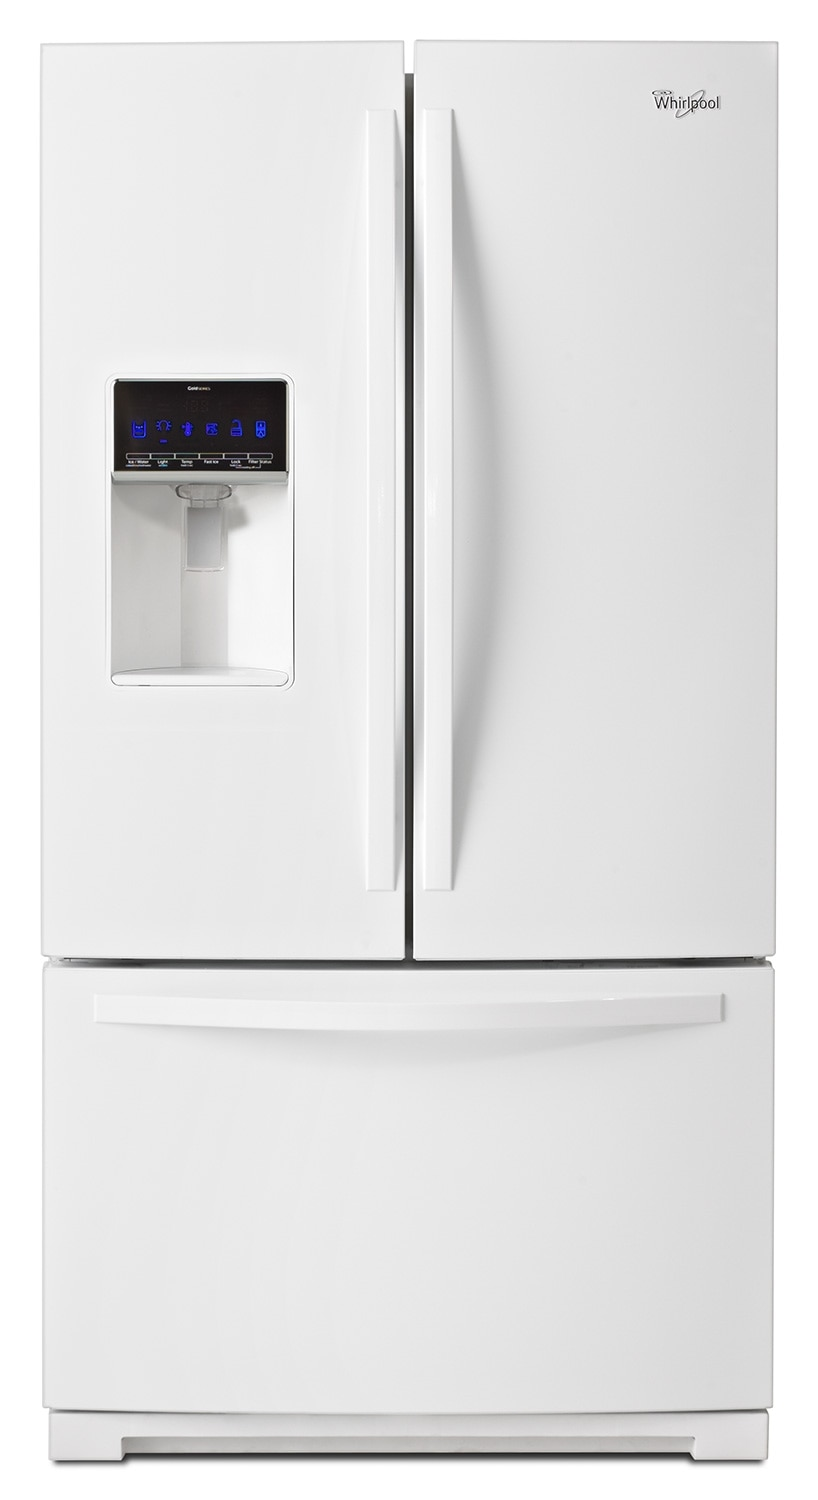 Whirlpool White French Door Refrigerator (24.7 Cu. Ft.) - WRF736SDAW